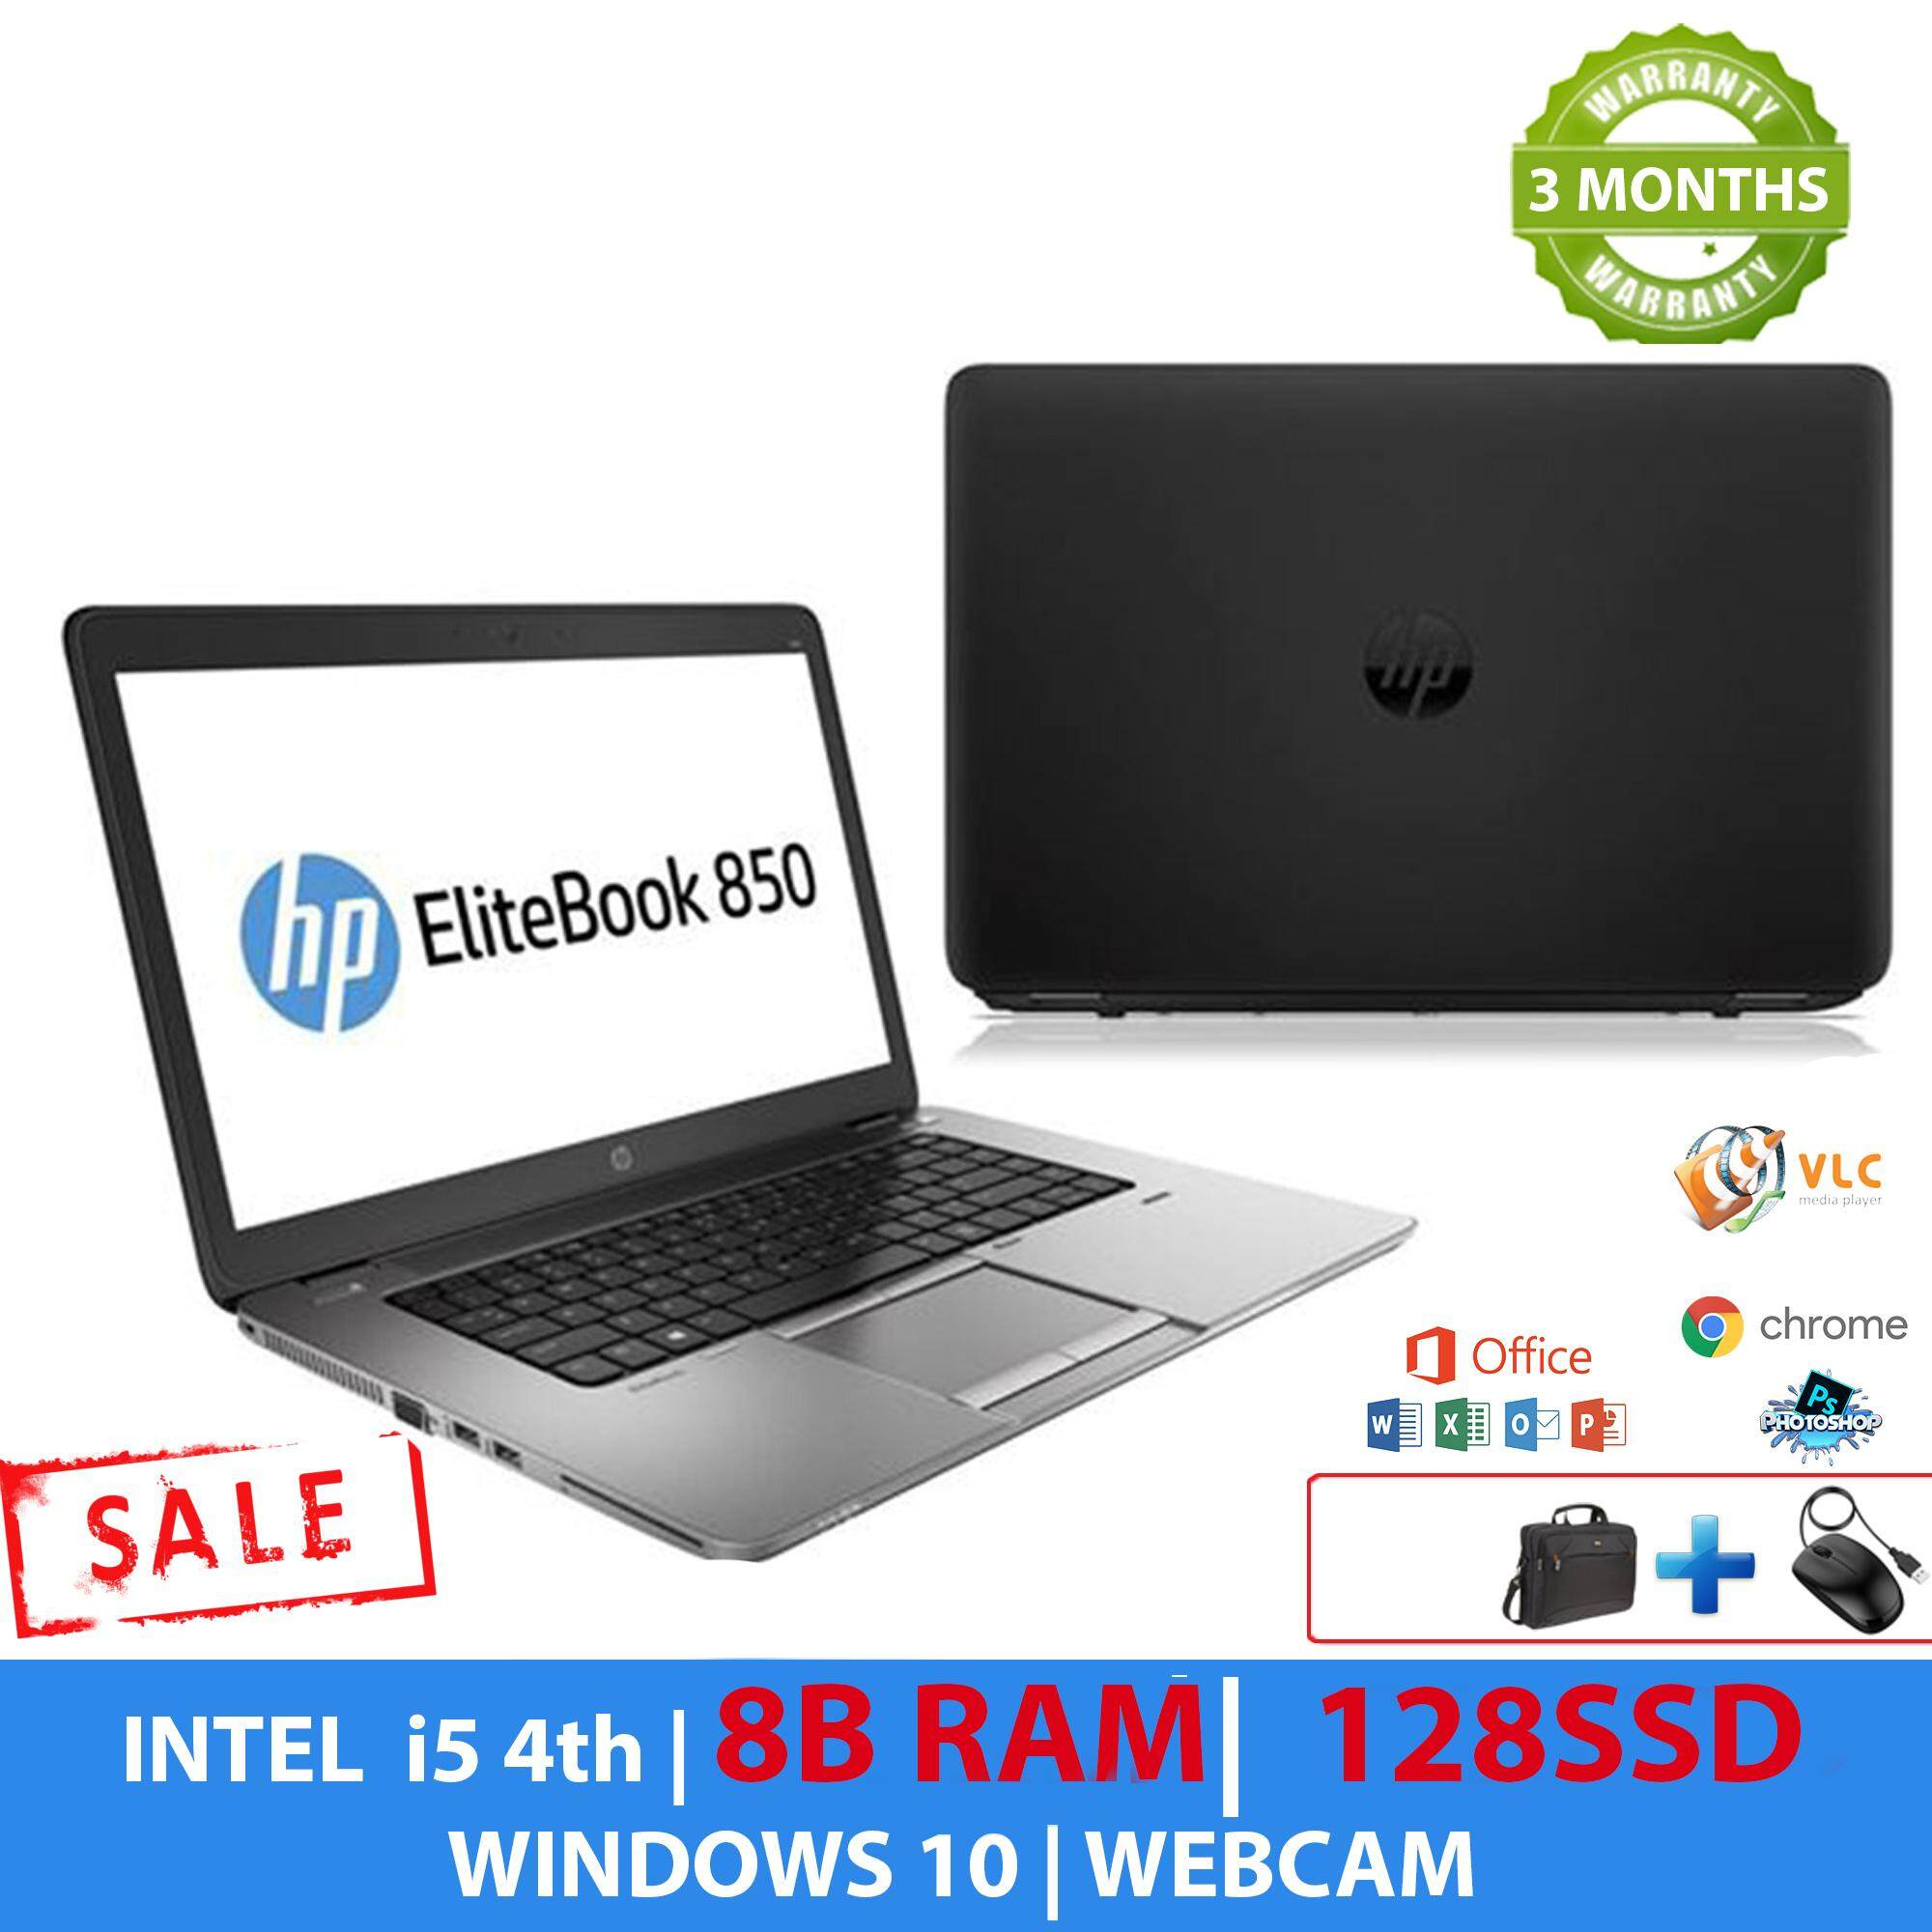 HP 850 G1 I5 4TH GEN 3 Months WARRANTY - 8GB RAM, 128GB  SSD, WEBCAM, FREE BAG, FREE MOUSE 100% ORIGINAL Malaysia